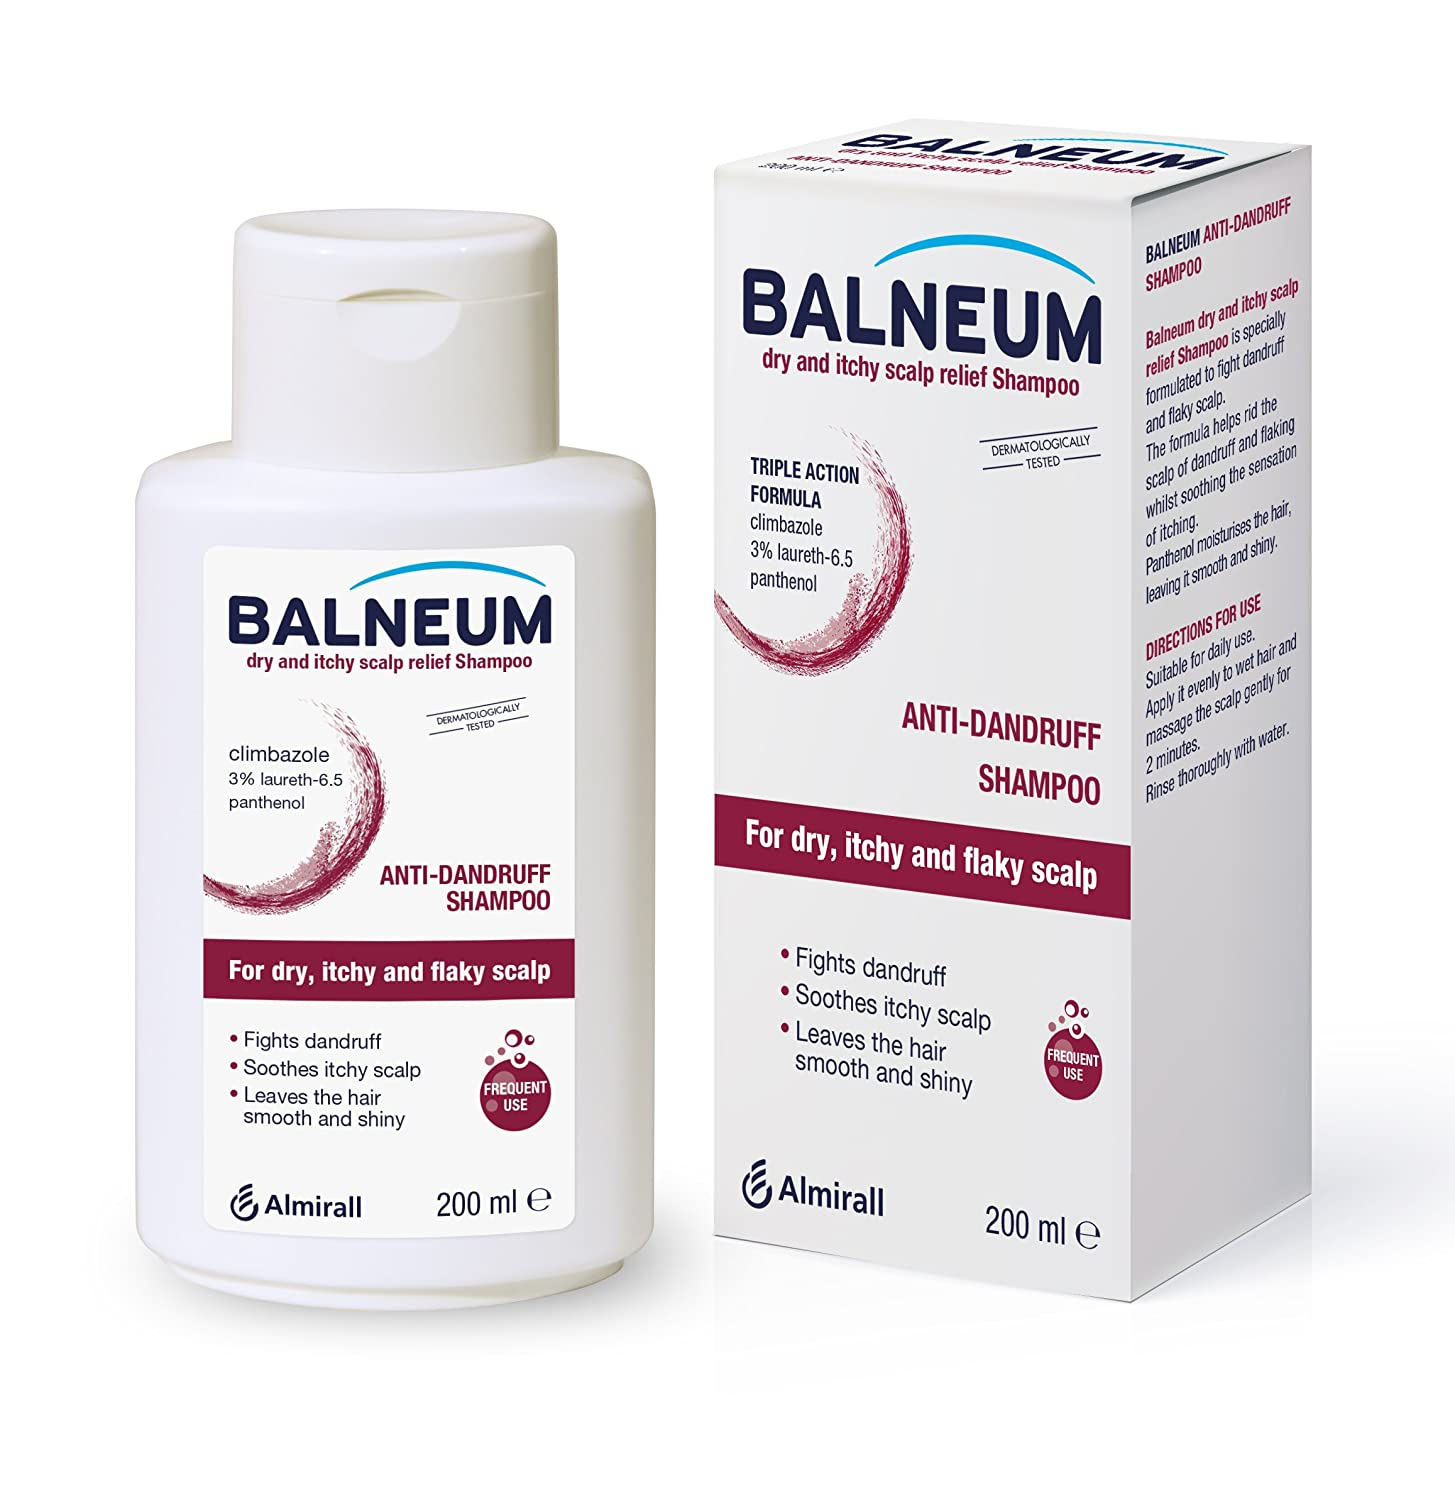 Balneum Dry and Itchy Scalp Relief Shampoo, 200 ml